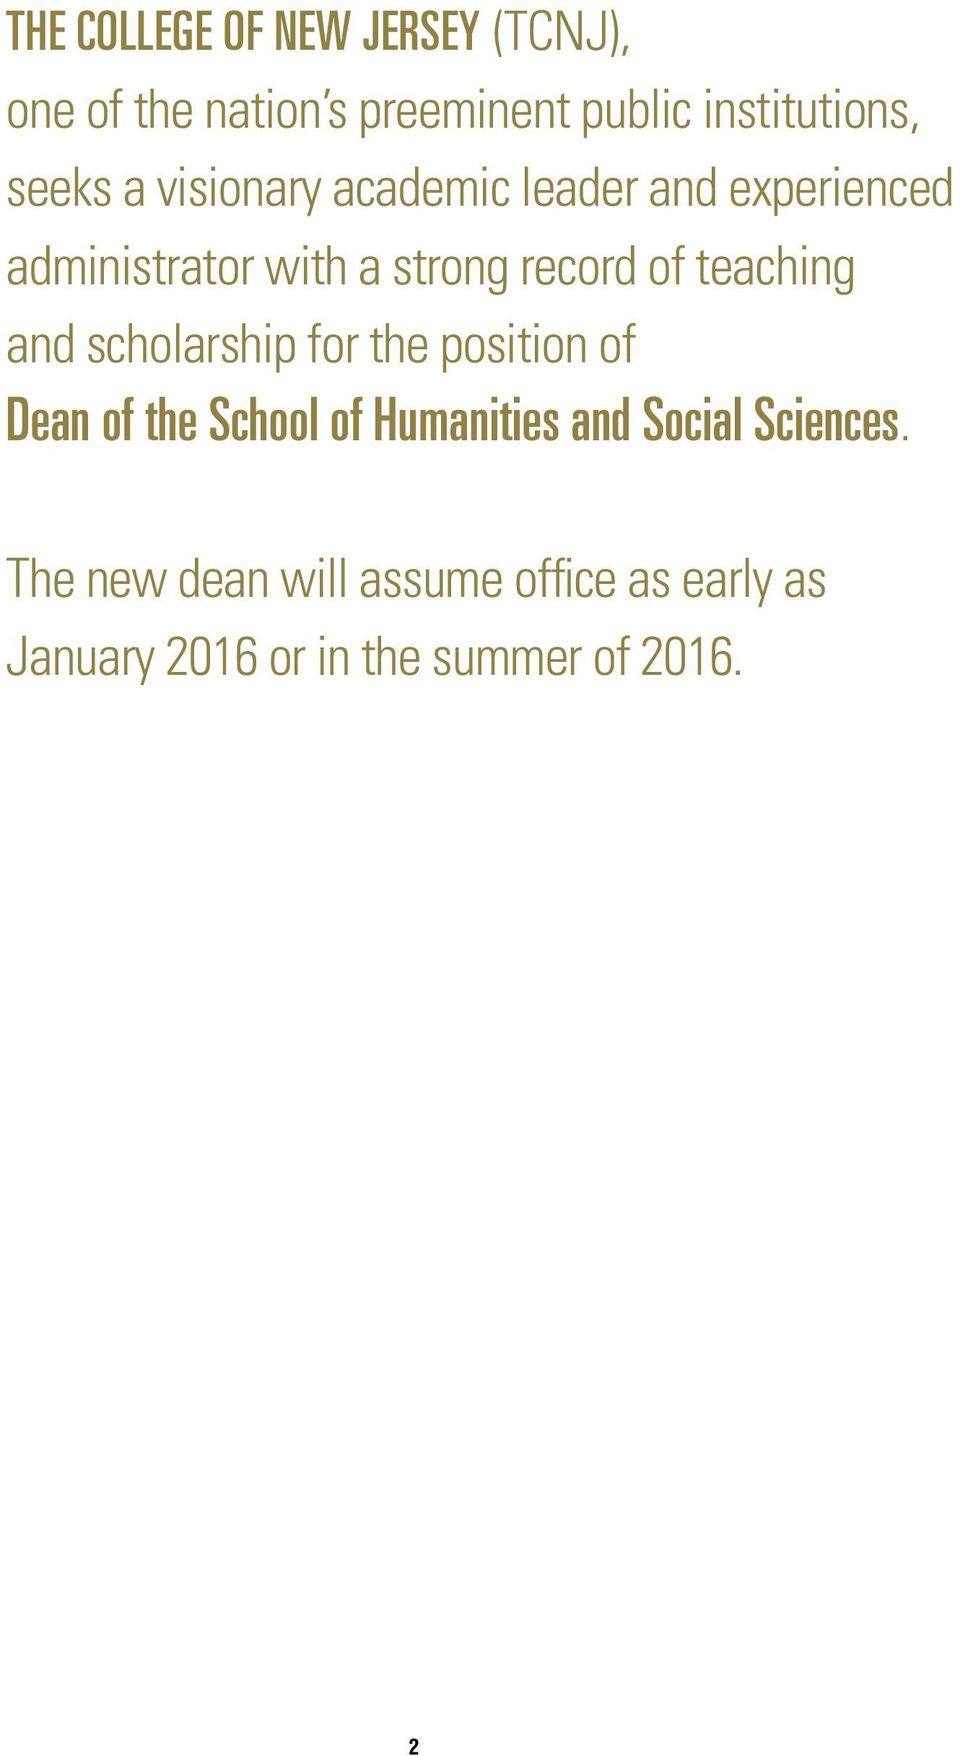 teaching and scholarship for the position of Dean of the School of Humanities and Social